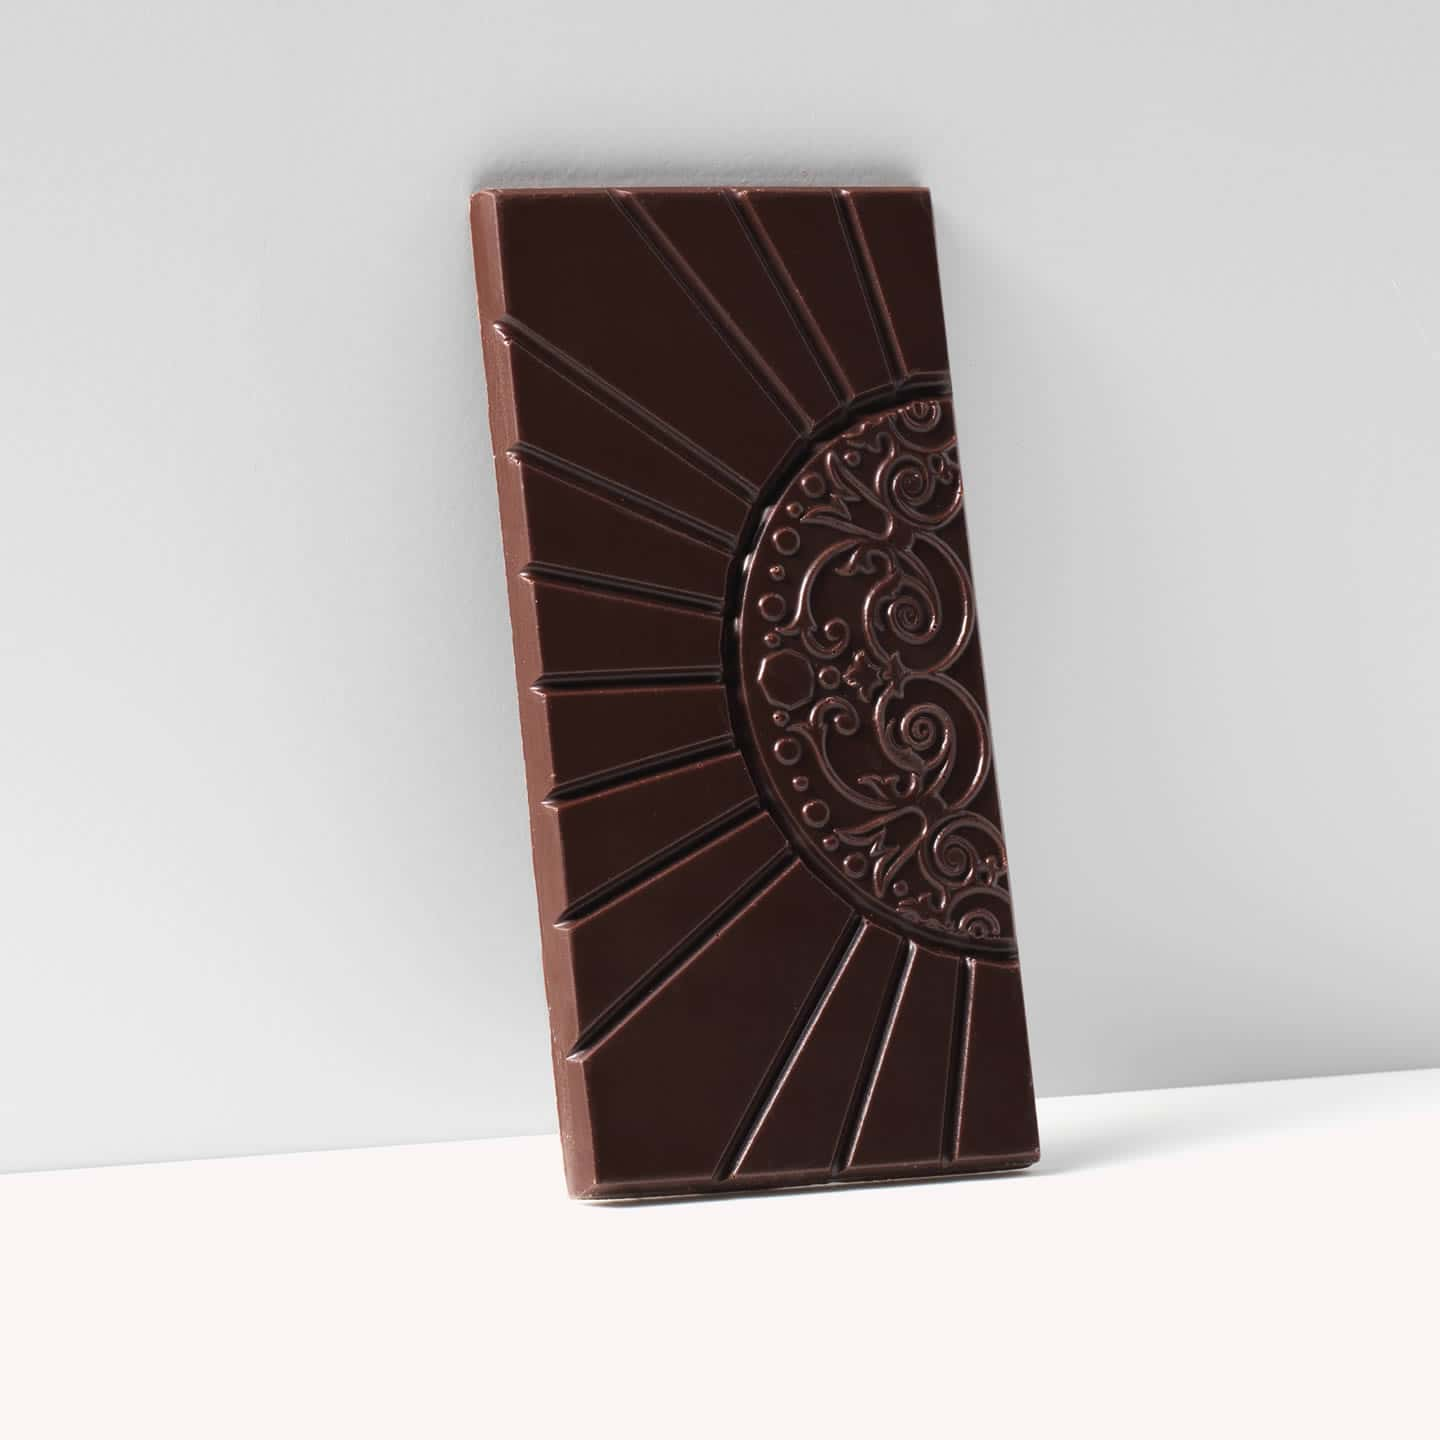 Tablette Chocolat Noir 100% Grand Cru origine Brésil 75g Bean to Bar